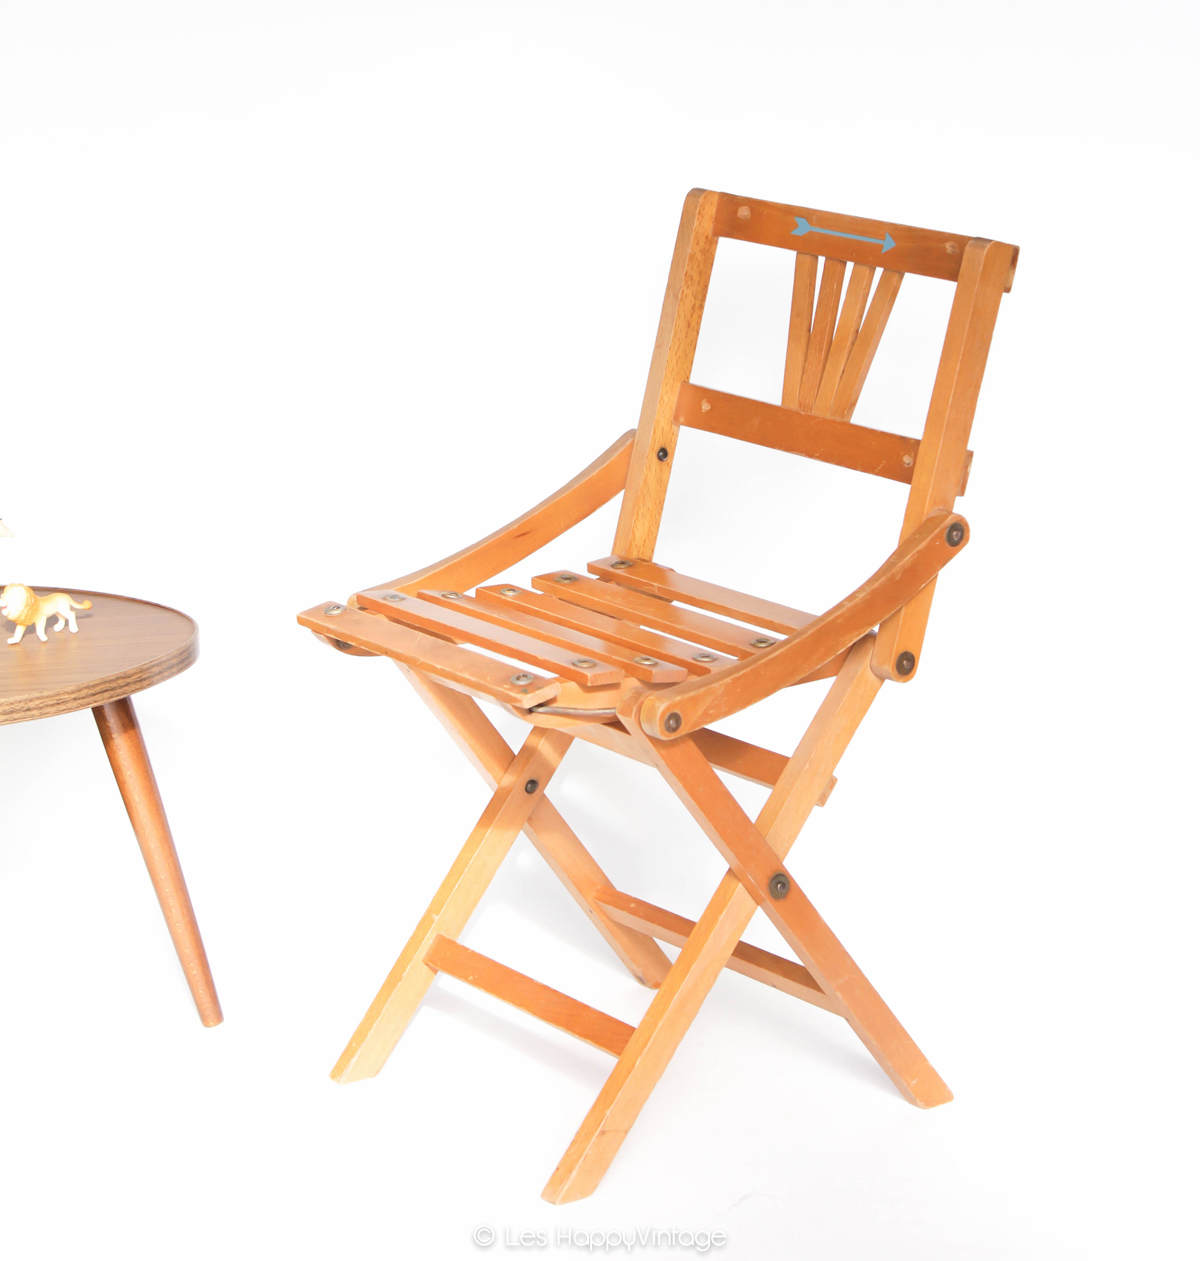 Chaise Enfant VintageLes Chaise Enfant VintageLes Happyvintage Happyvintage WHID9E2